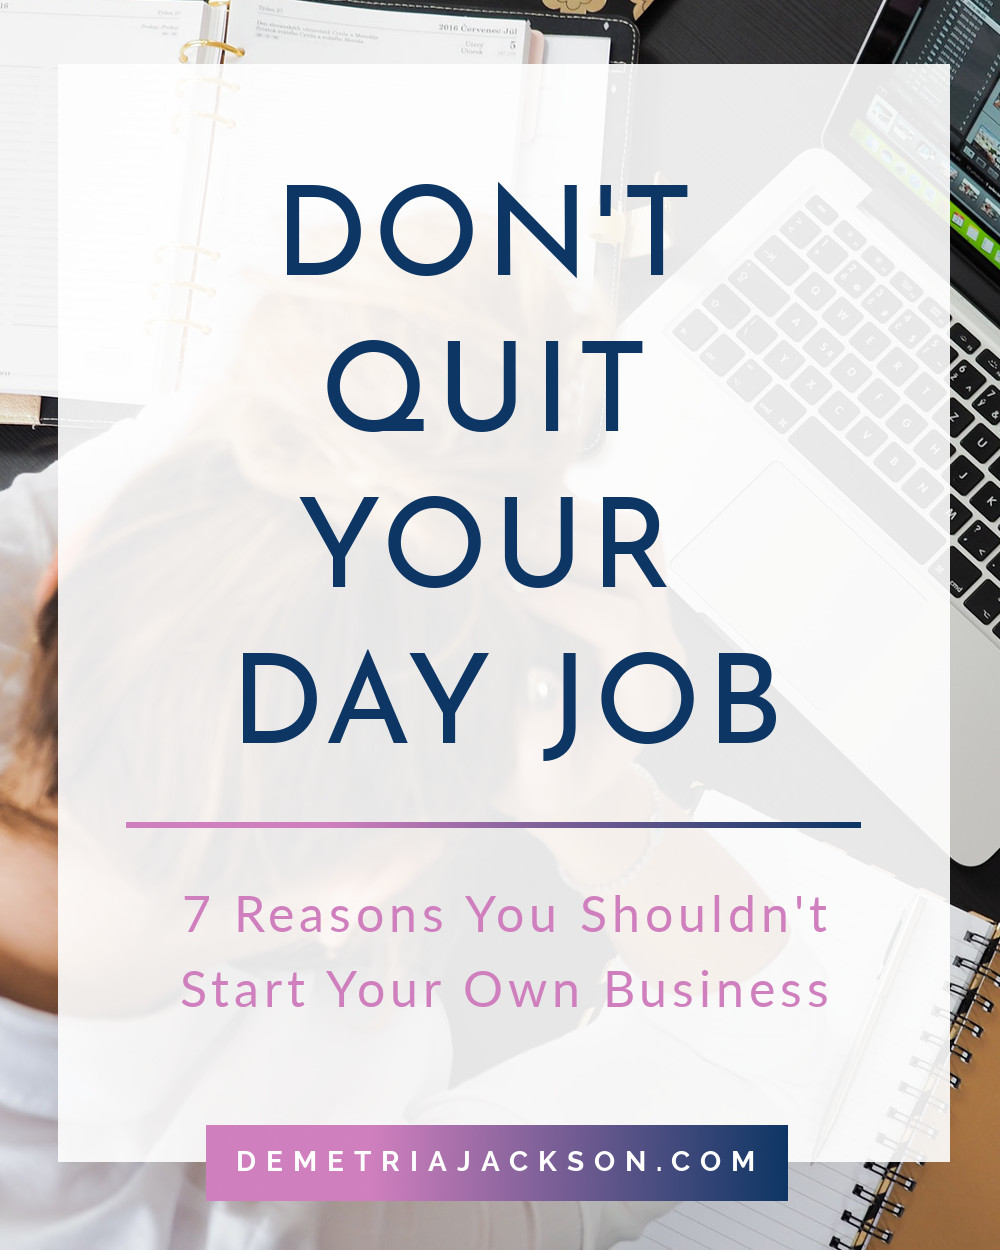 blog-image-7-reasons-you-shouldnt-start-a-business.jpeg